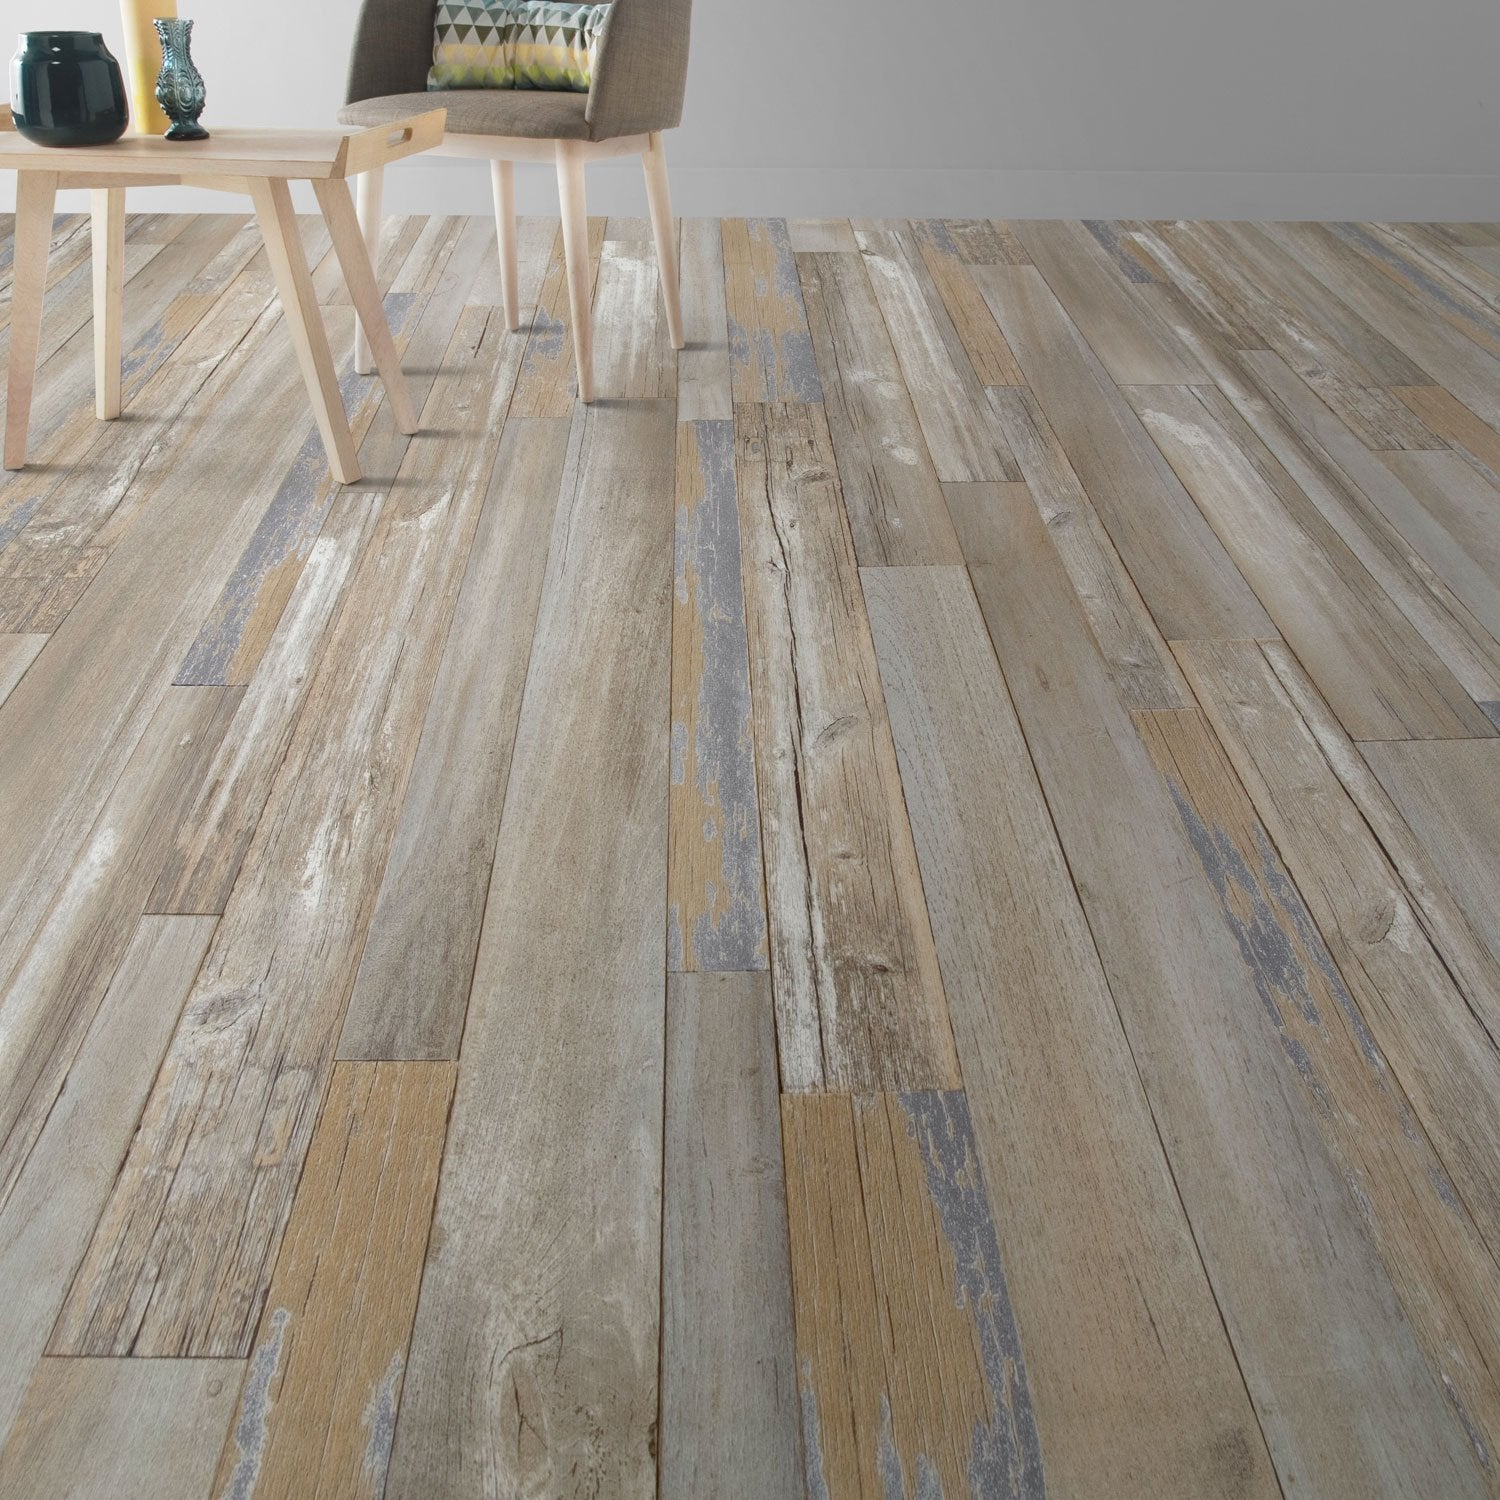 Lame pvc clipsable multicolore harbor blue senso lock gerflor leroy merlin - Lame parquet autocollant ...